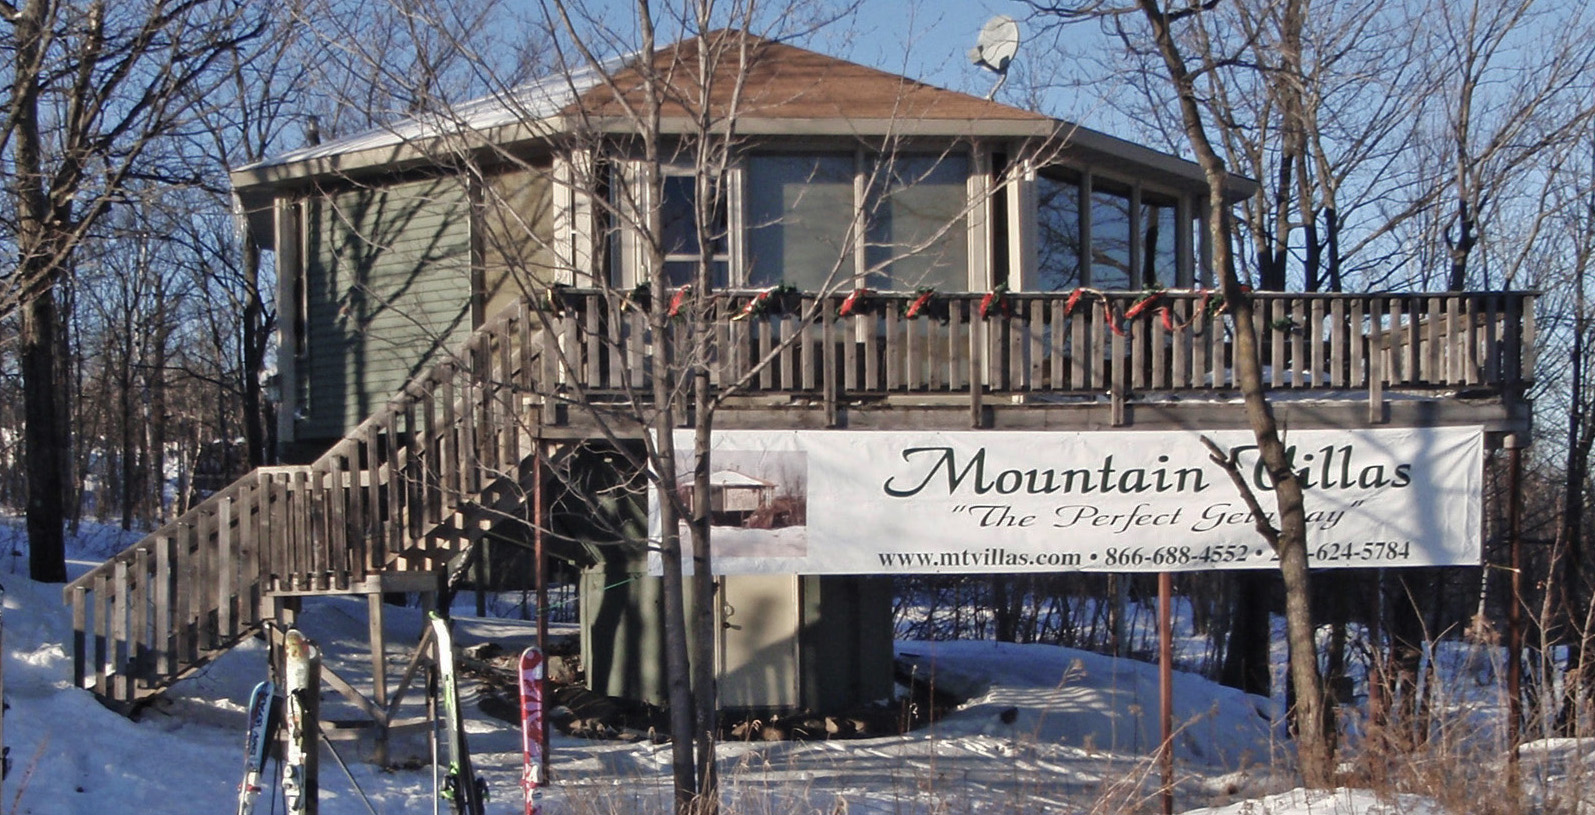 Mountain Villas advertising banner